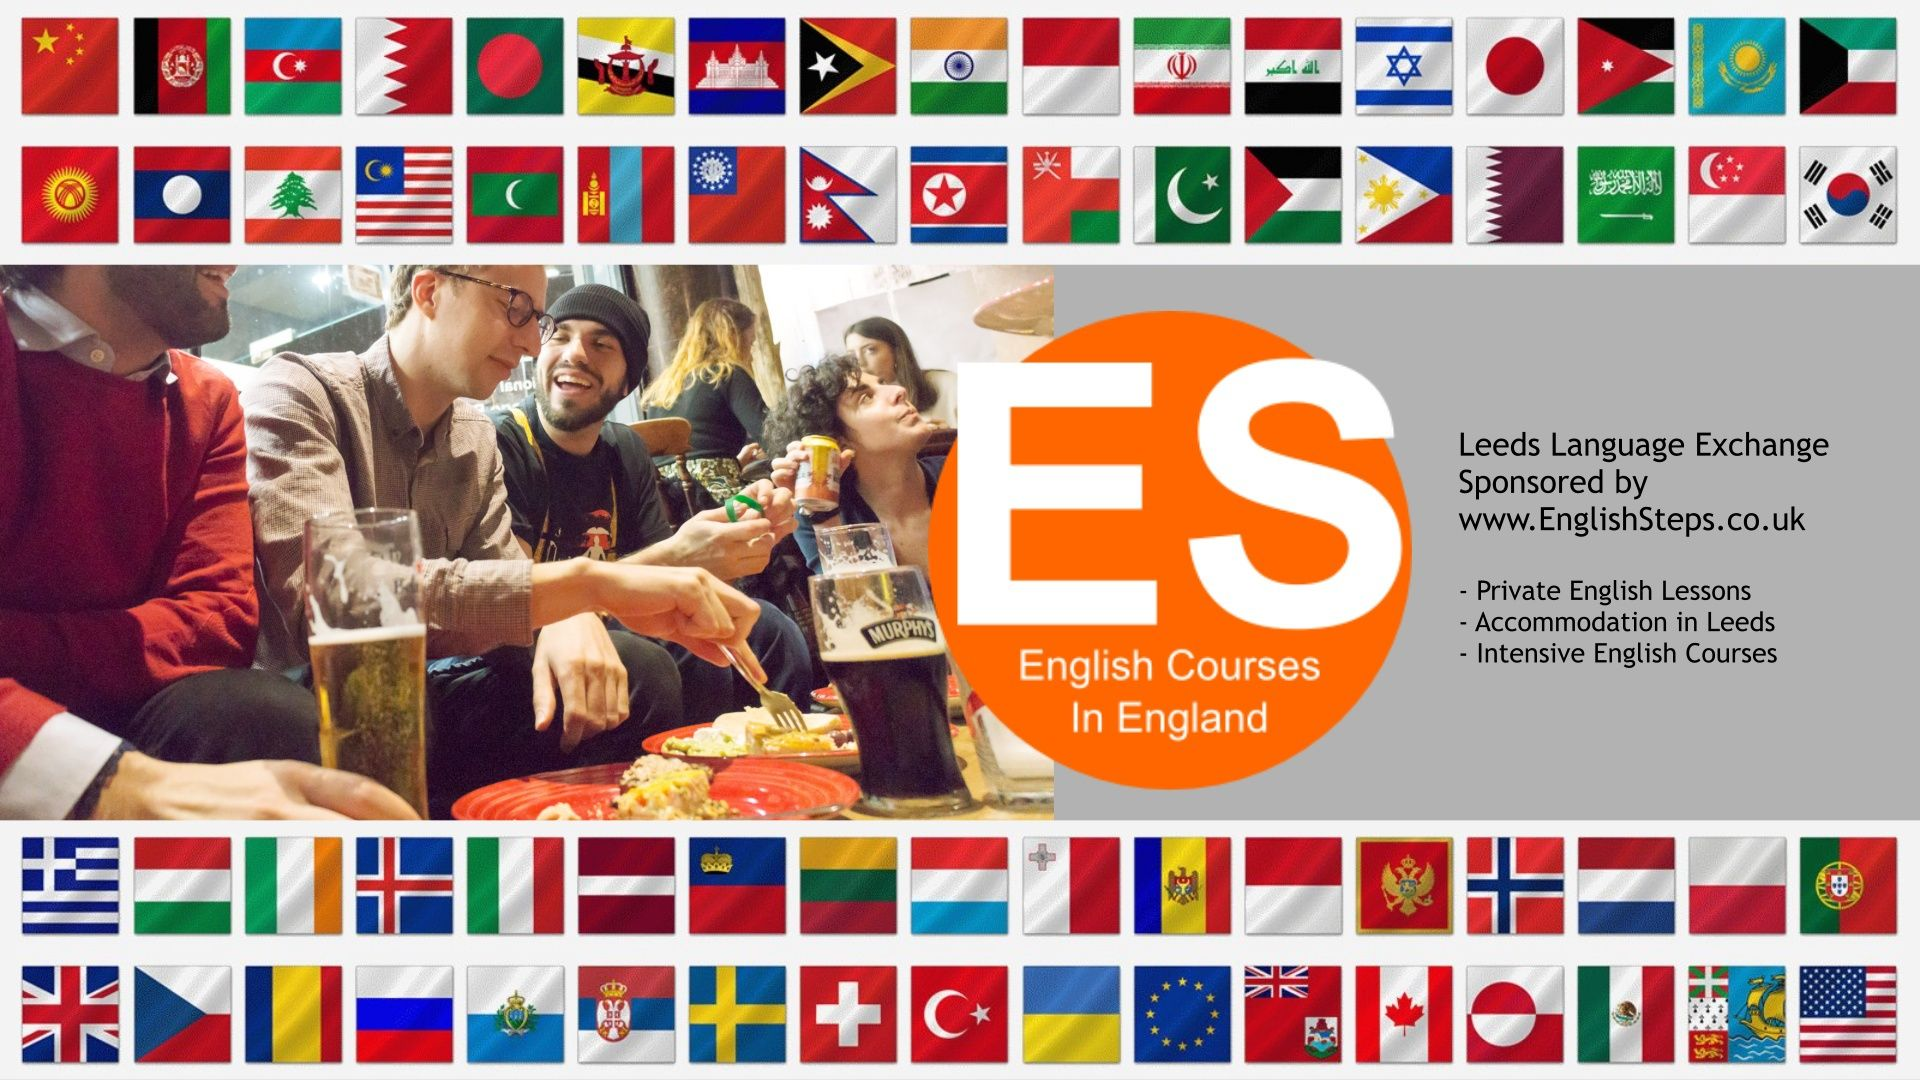 Leeds language exchange